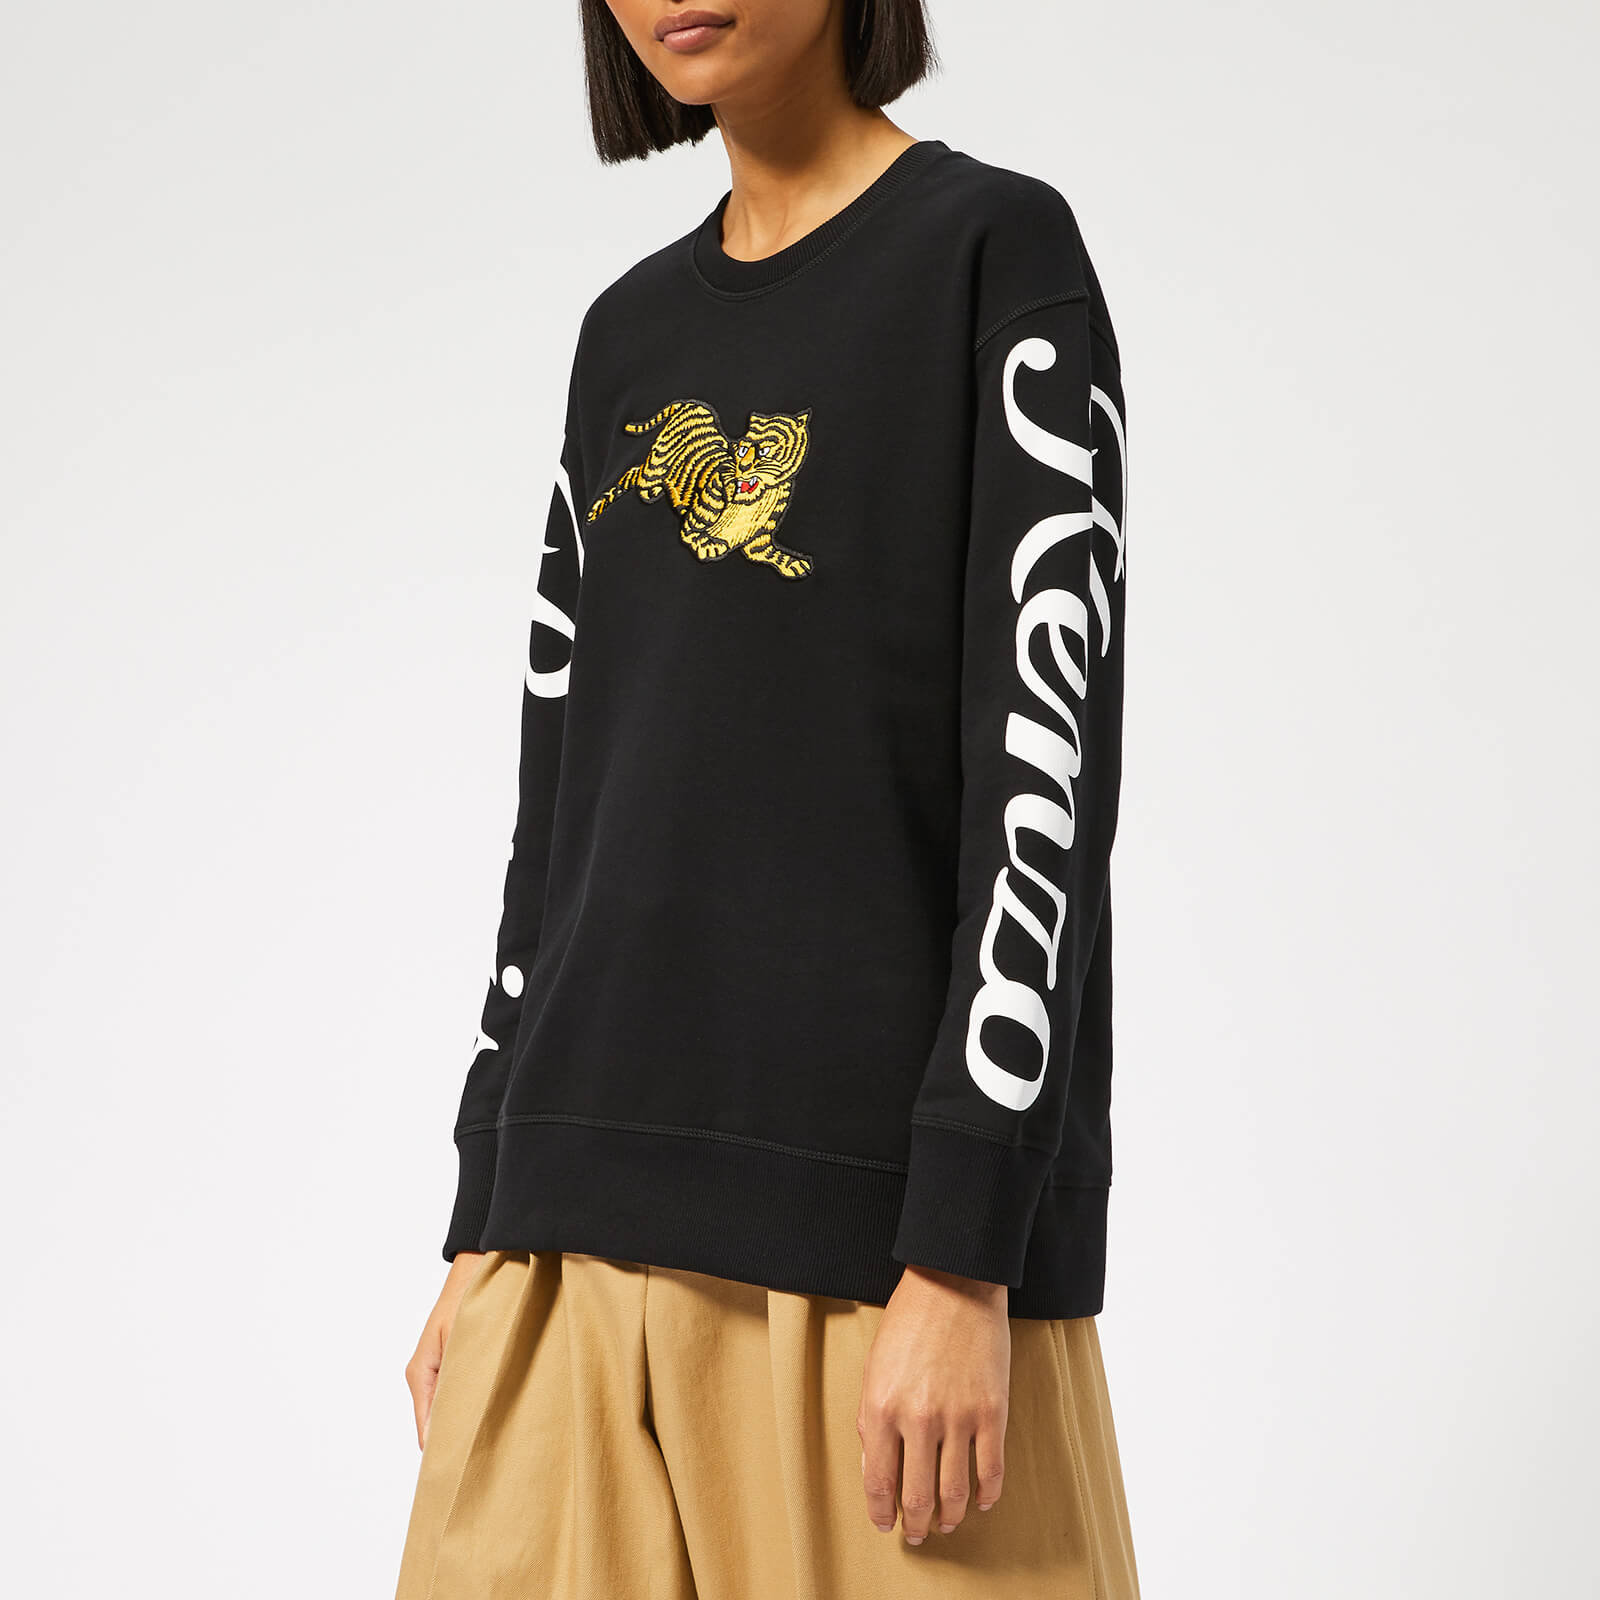 fe88c4b4b9e8 KENZO Women's Jumping Tiger Relax Sweatshirt - Black - Free UK Delivery  over £50